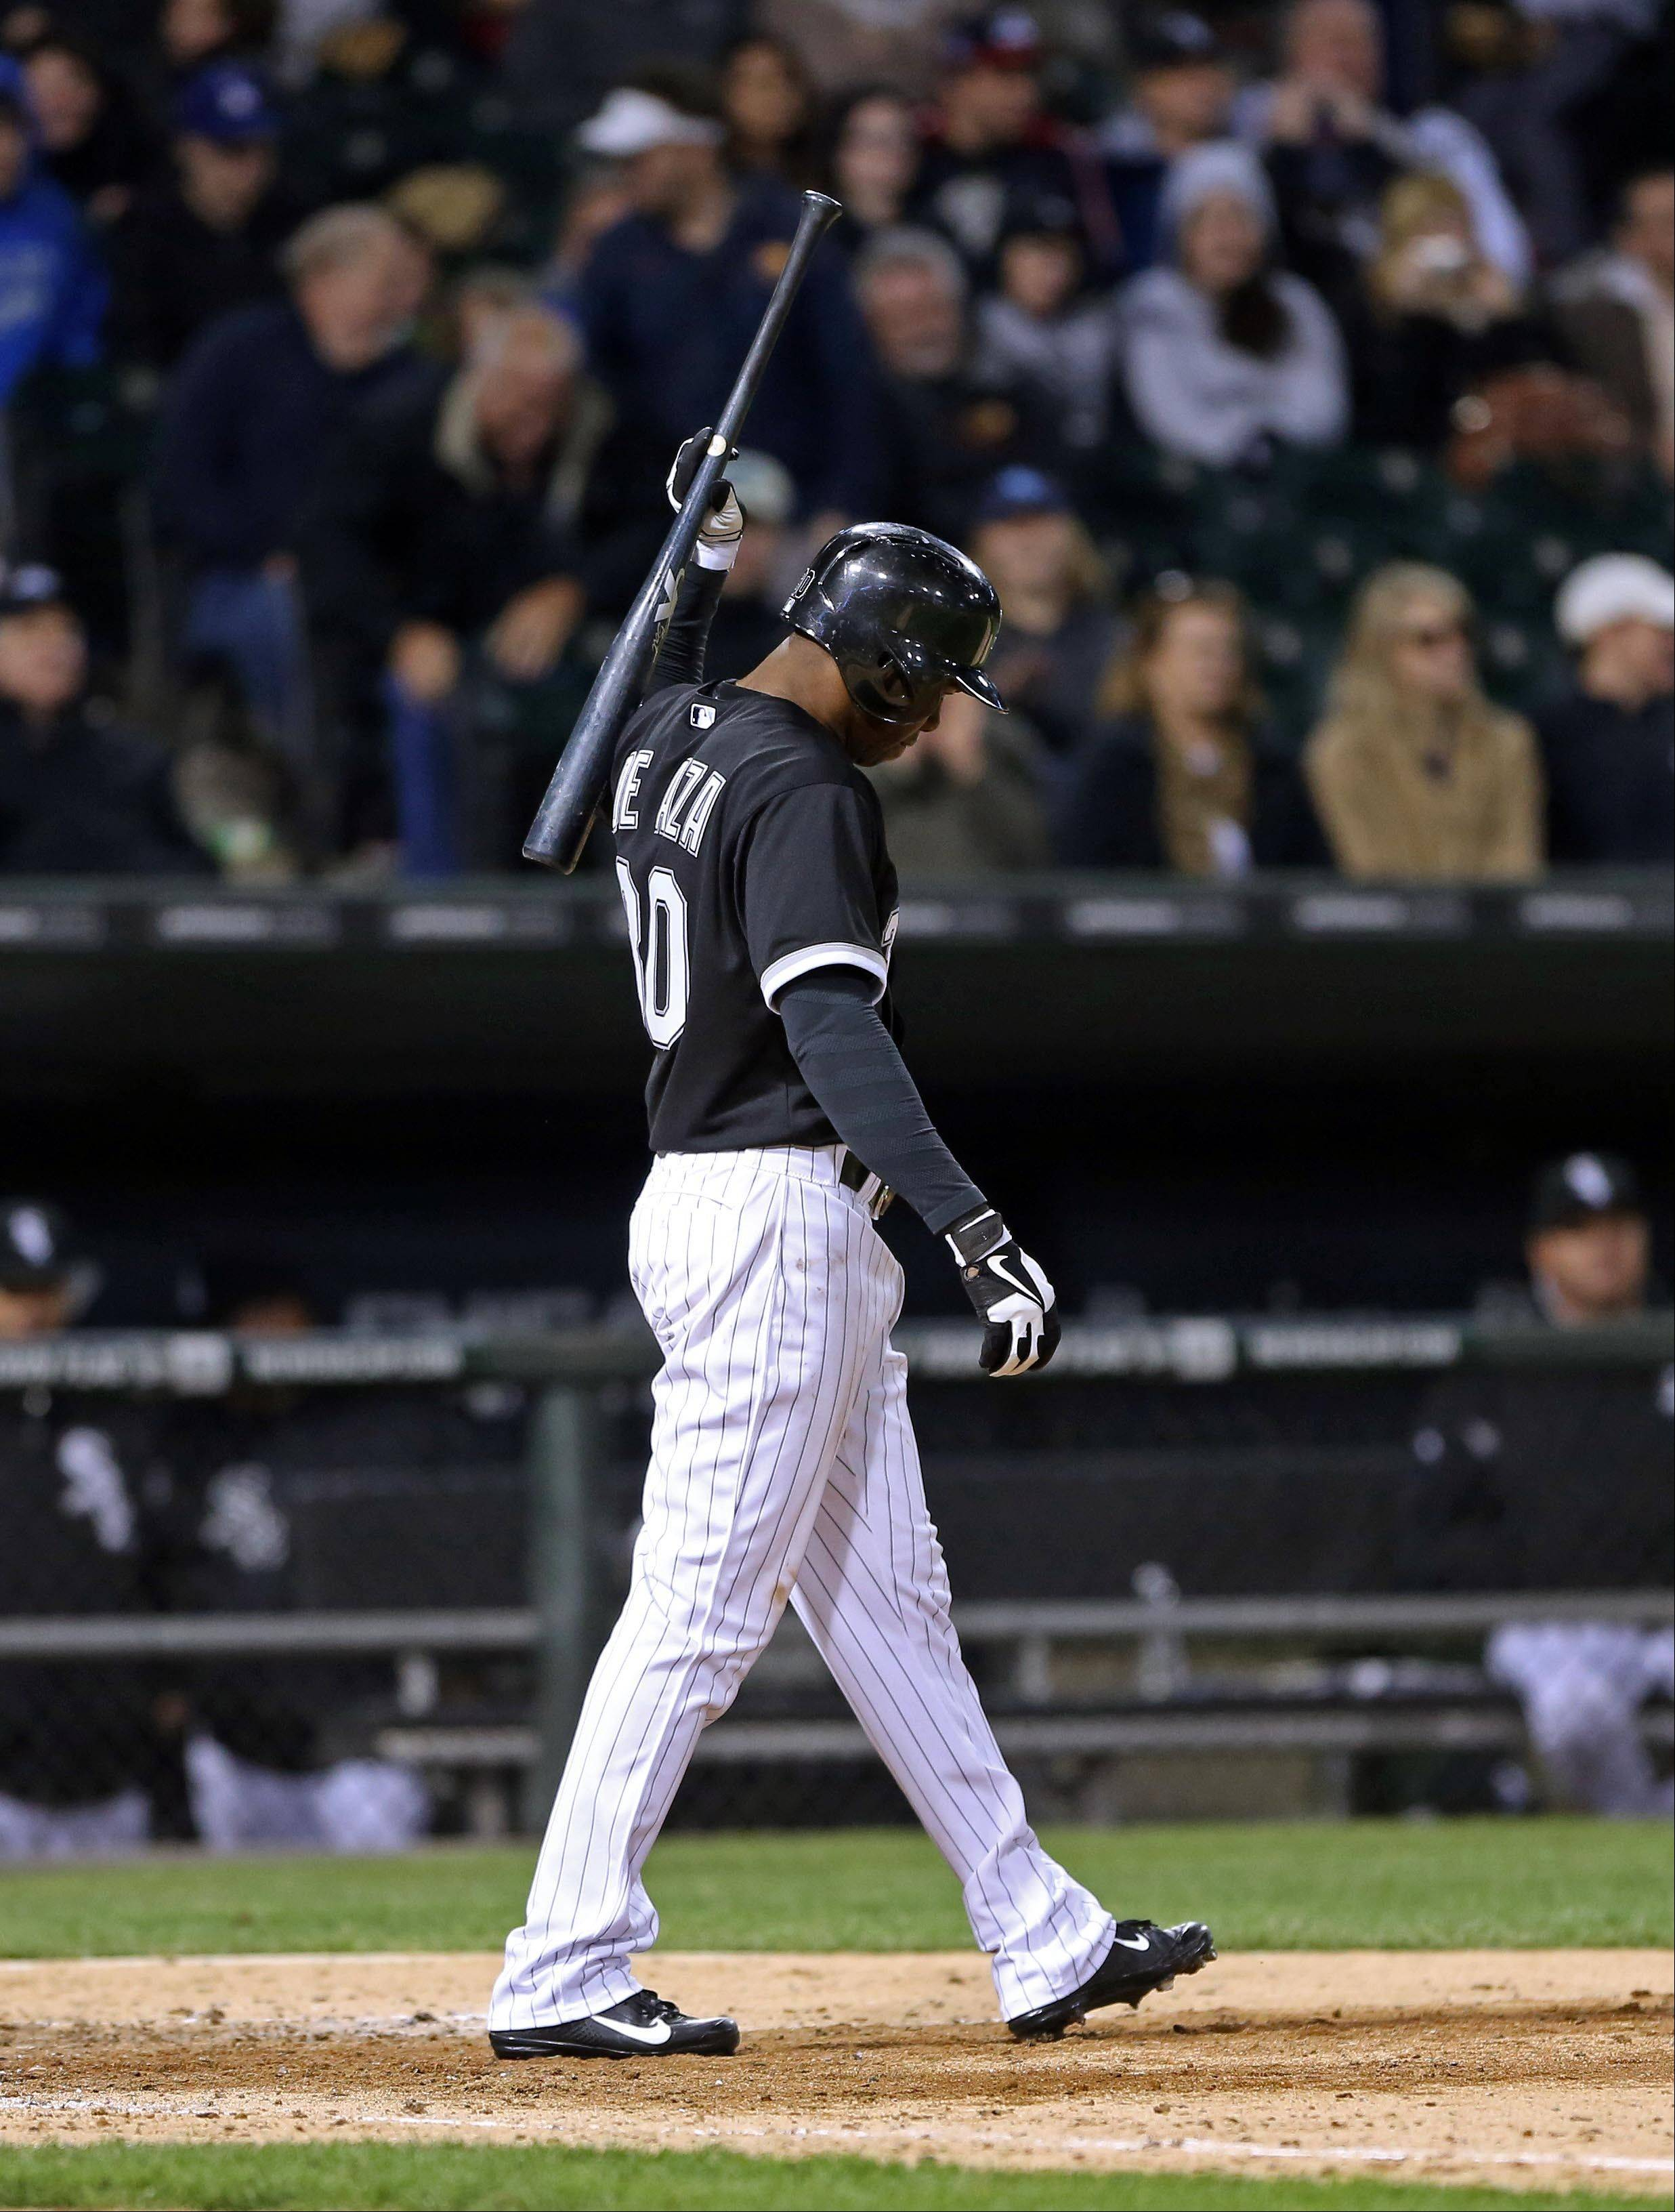 The White Sox's Alejandro De Aza strikes out with the bases loaded to end the eighth inning against the Tampa Bay Rays Saturday night at U.S. Cellular Field. The Sox lost 10-4.